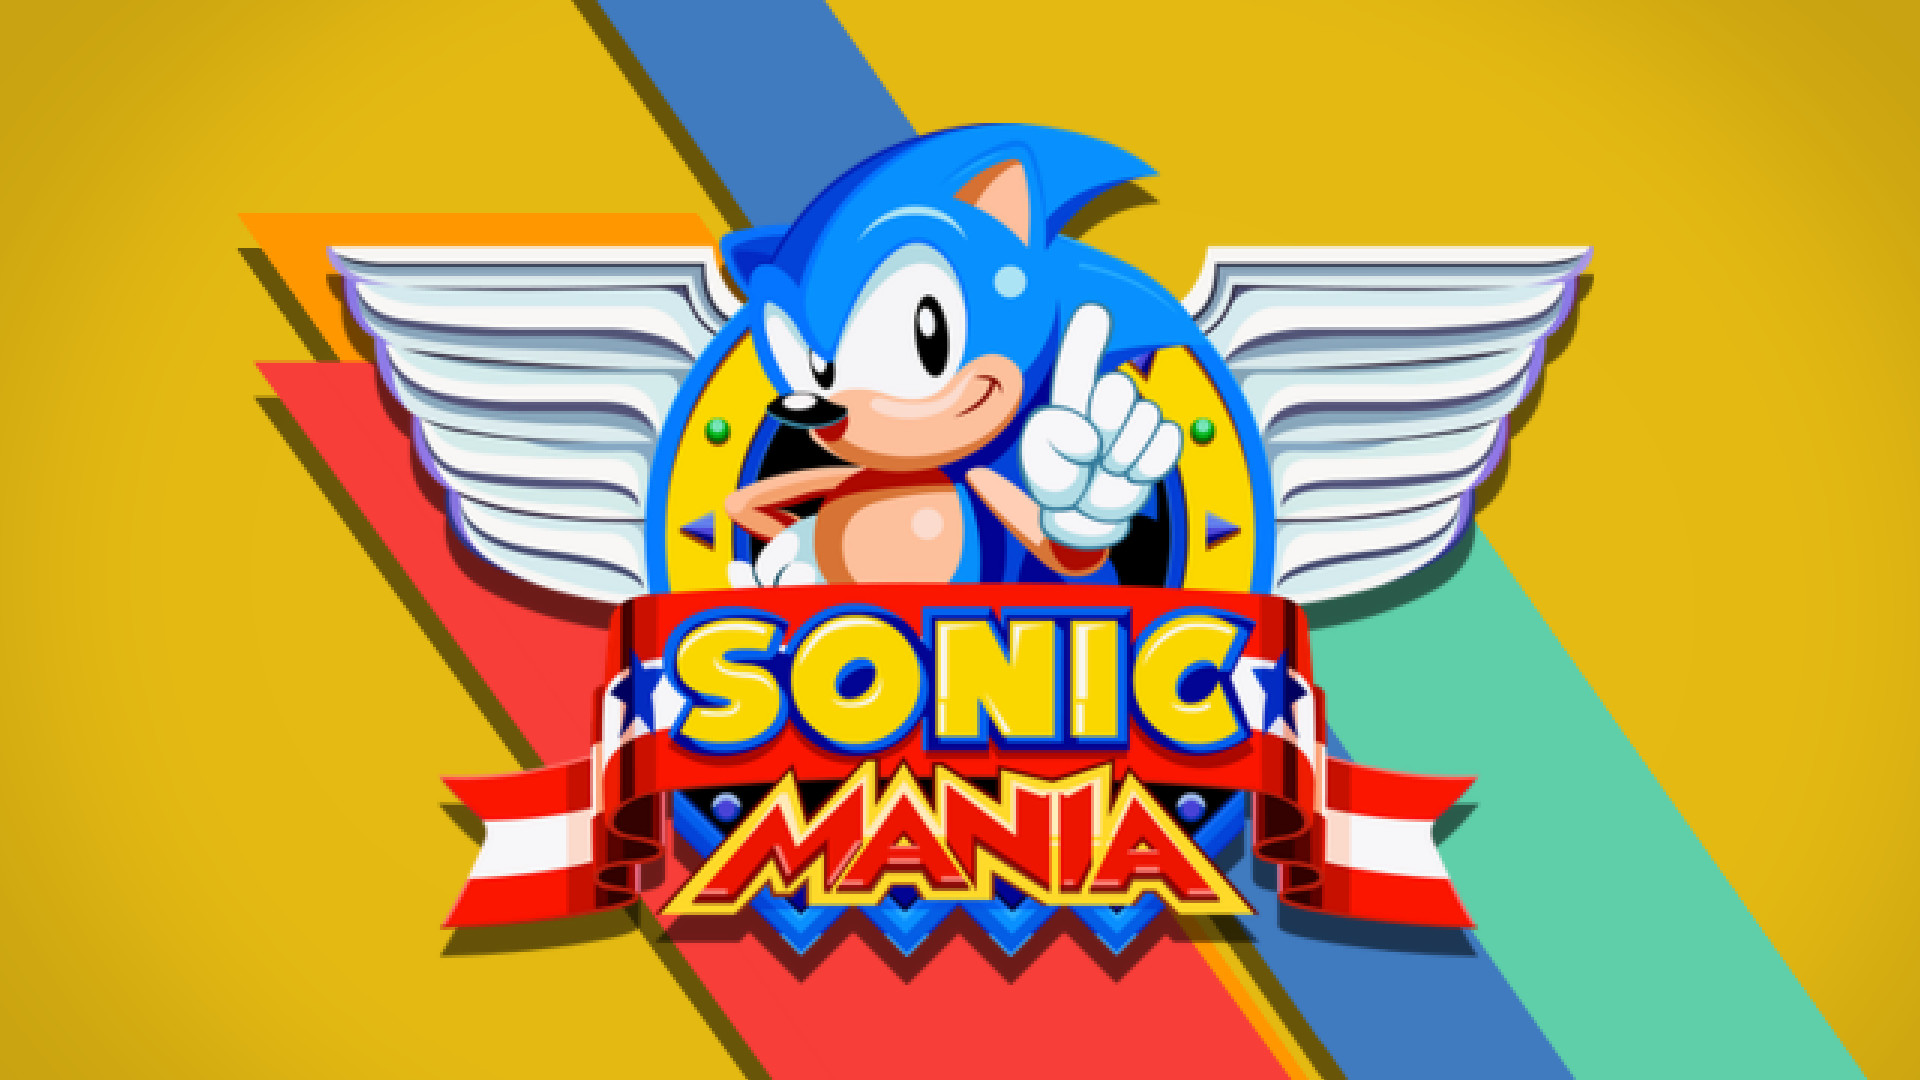 Sonic Mania Wallpapers Wallpapertag